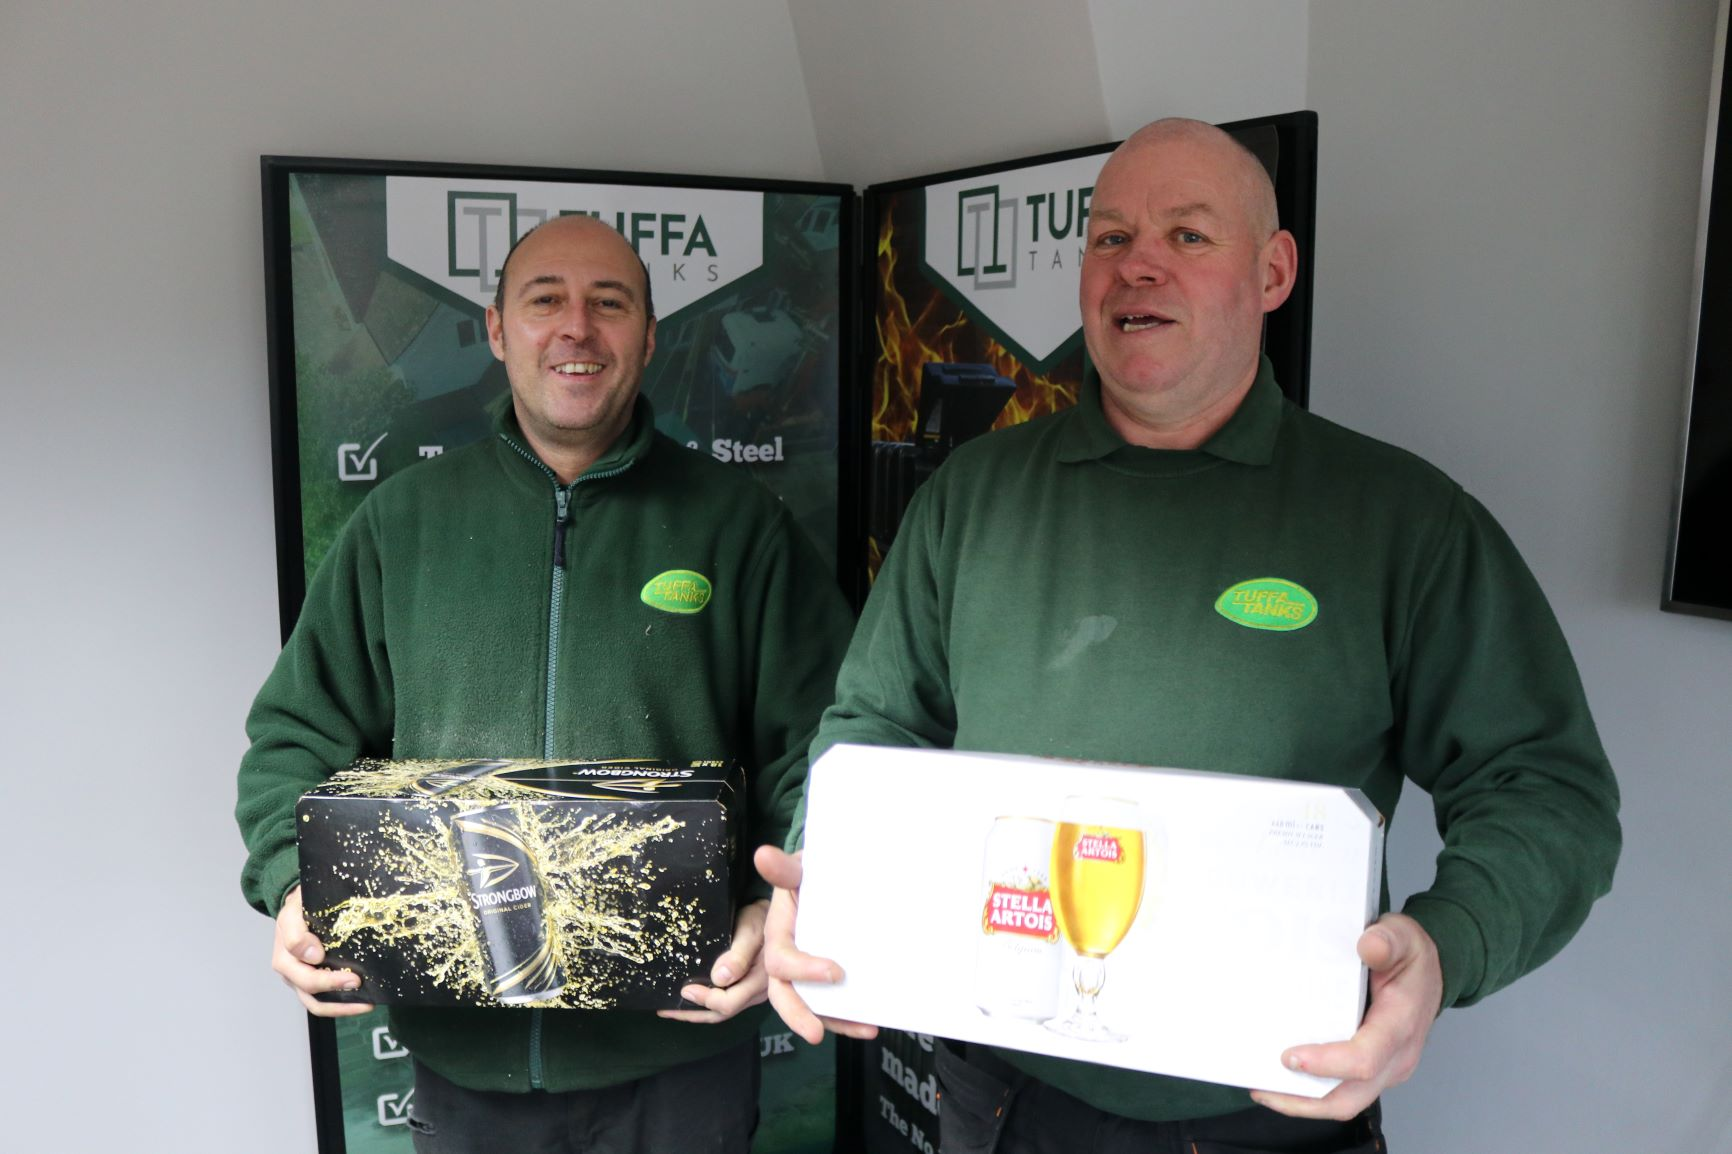 Tuffa Employees of the Month Jan